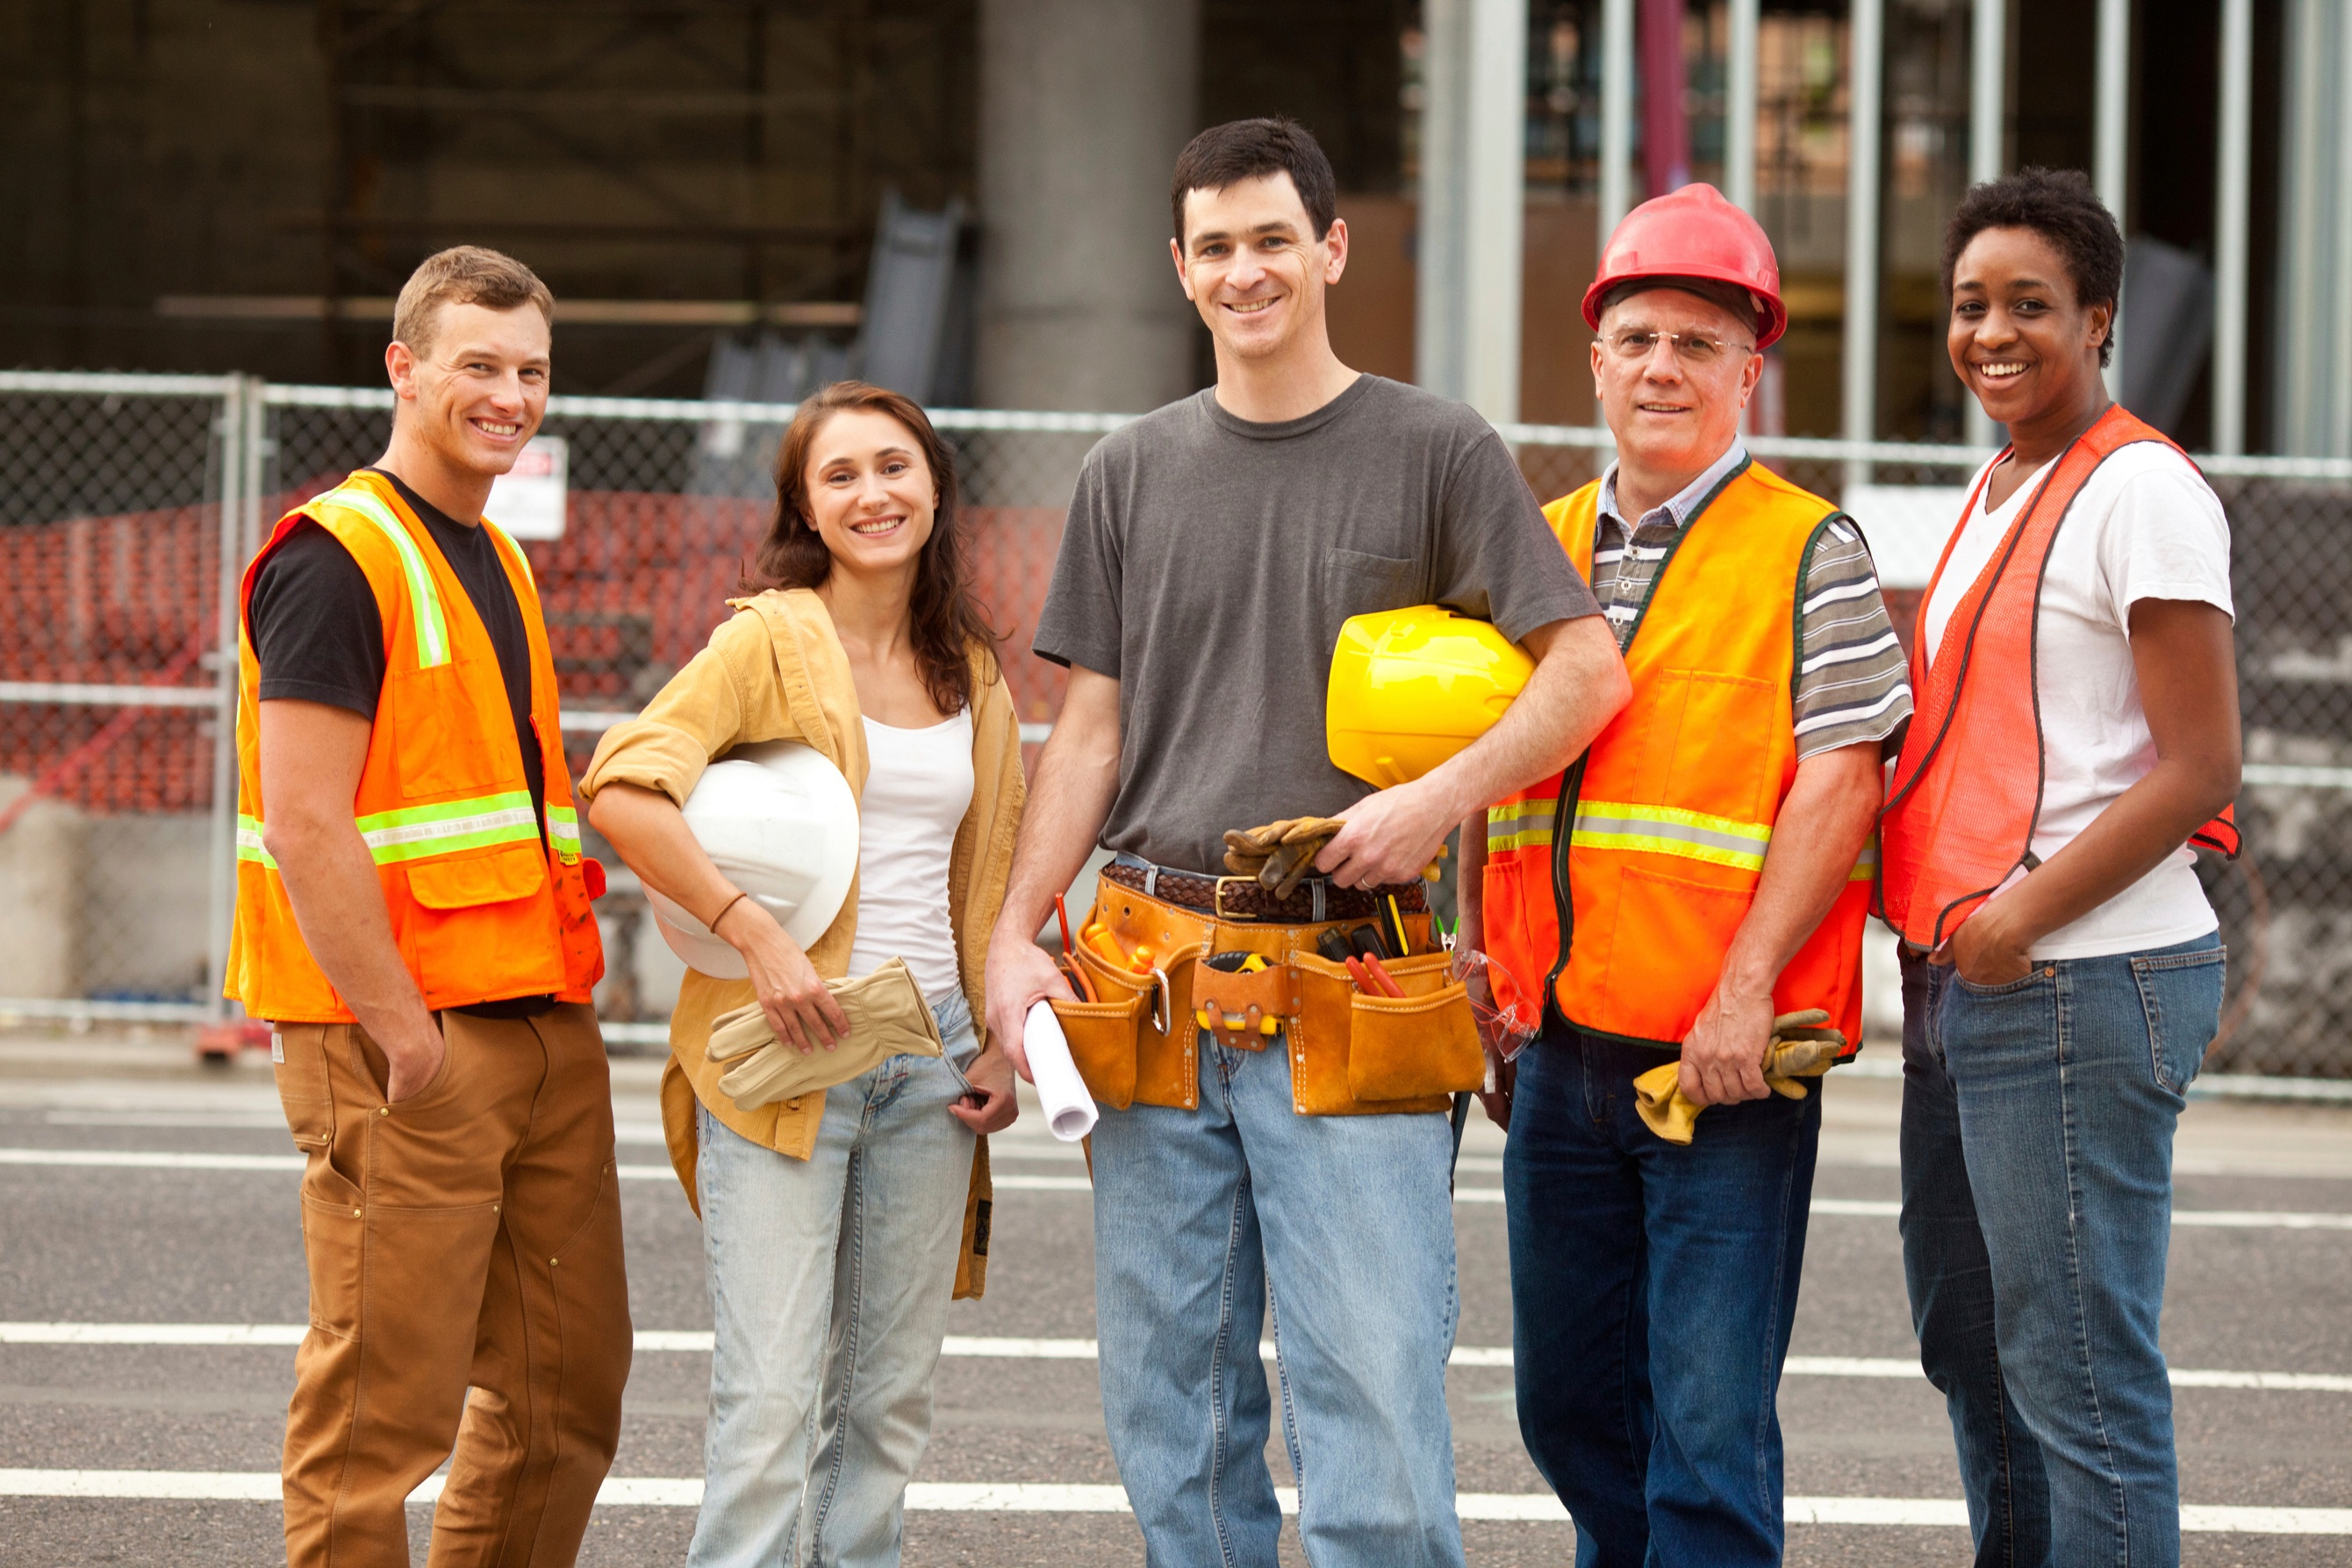 Group of construction / safety workers